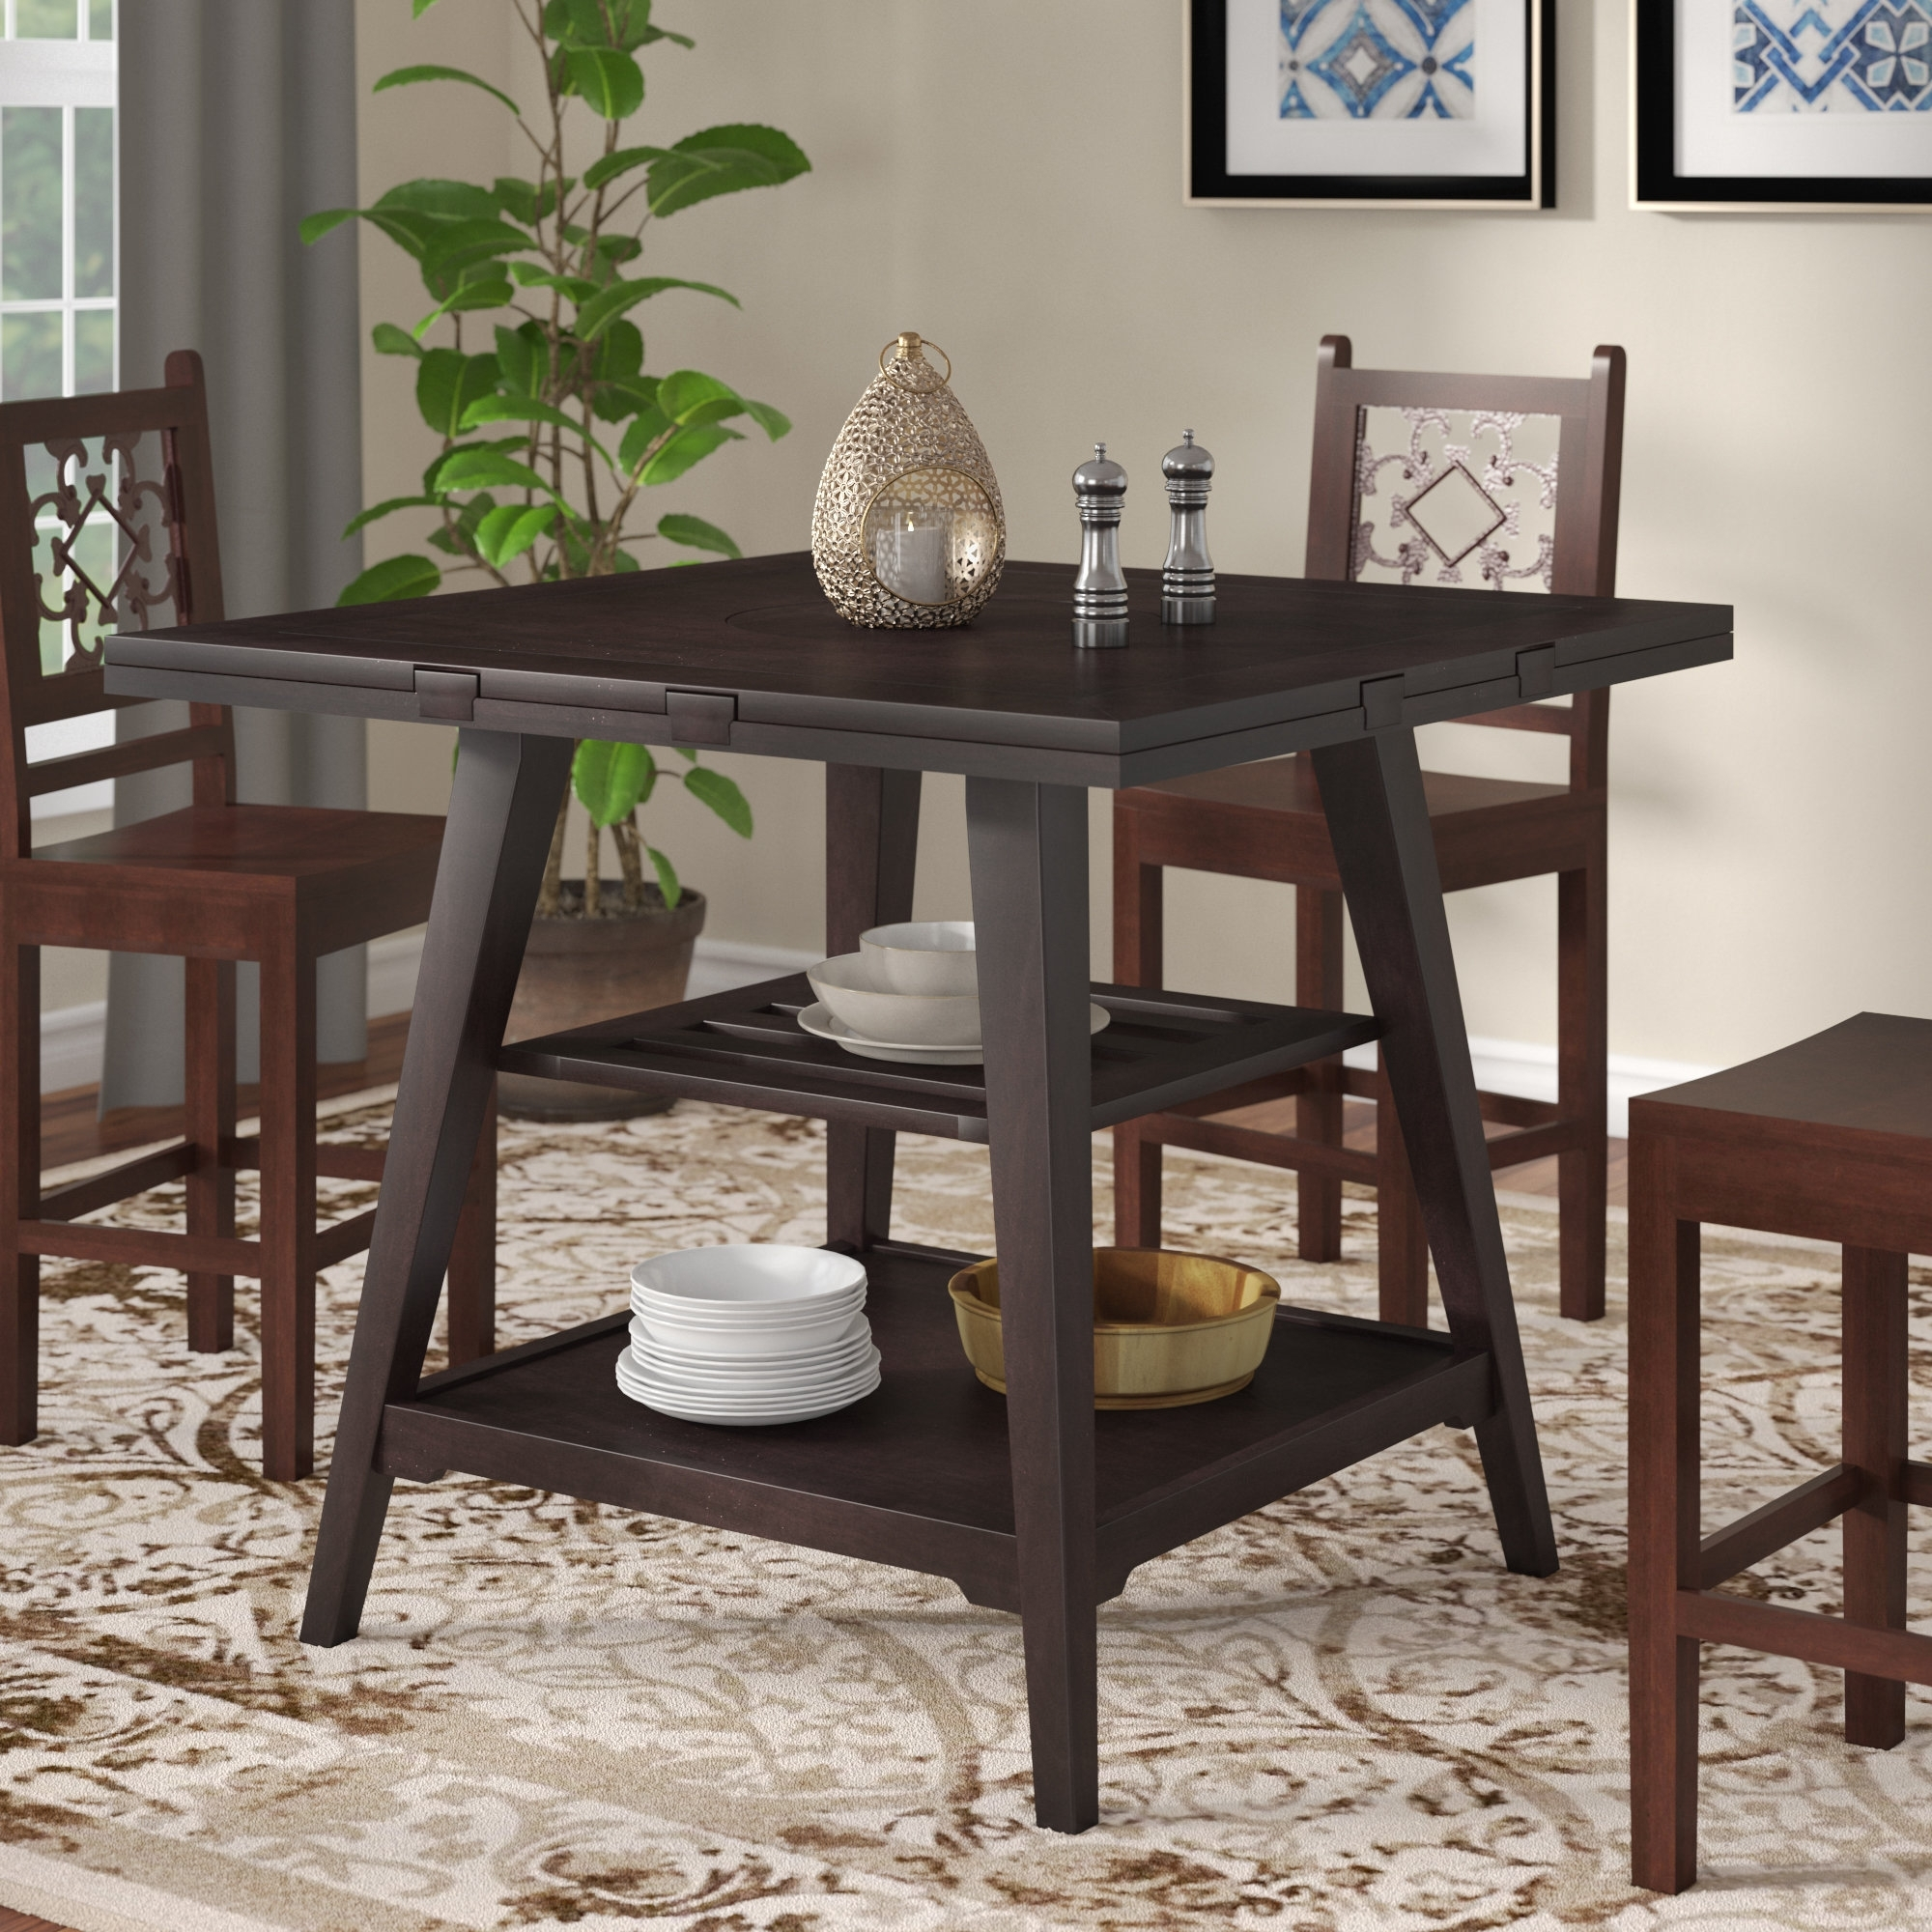 Wayfair Intended For Round Extendable Dining Tables And Chairs (View 17 of 25)